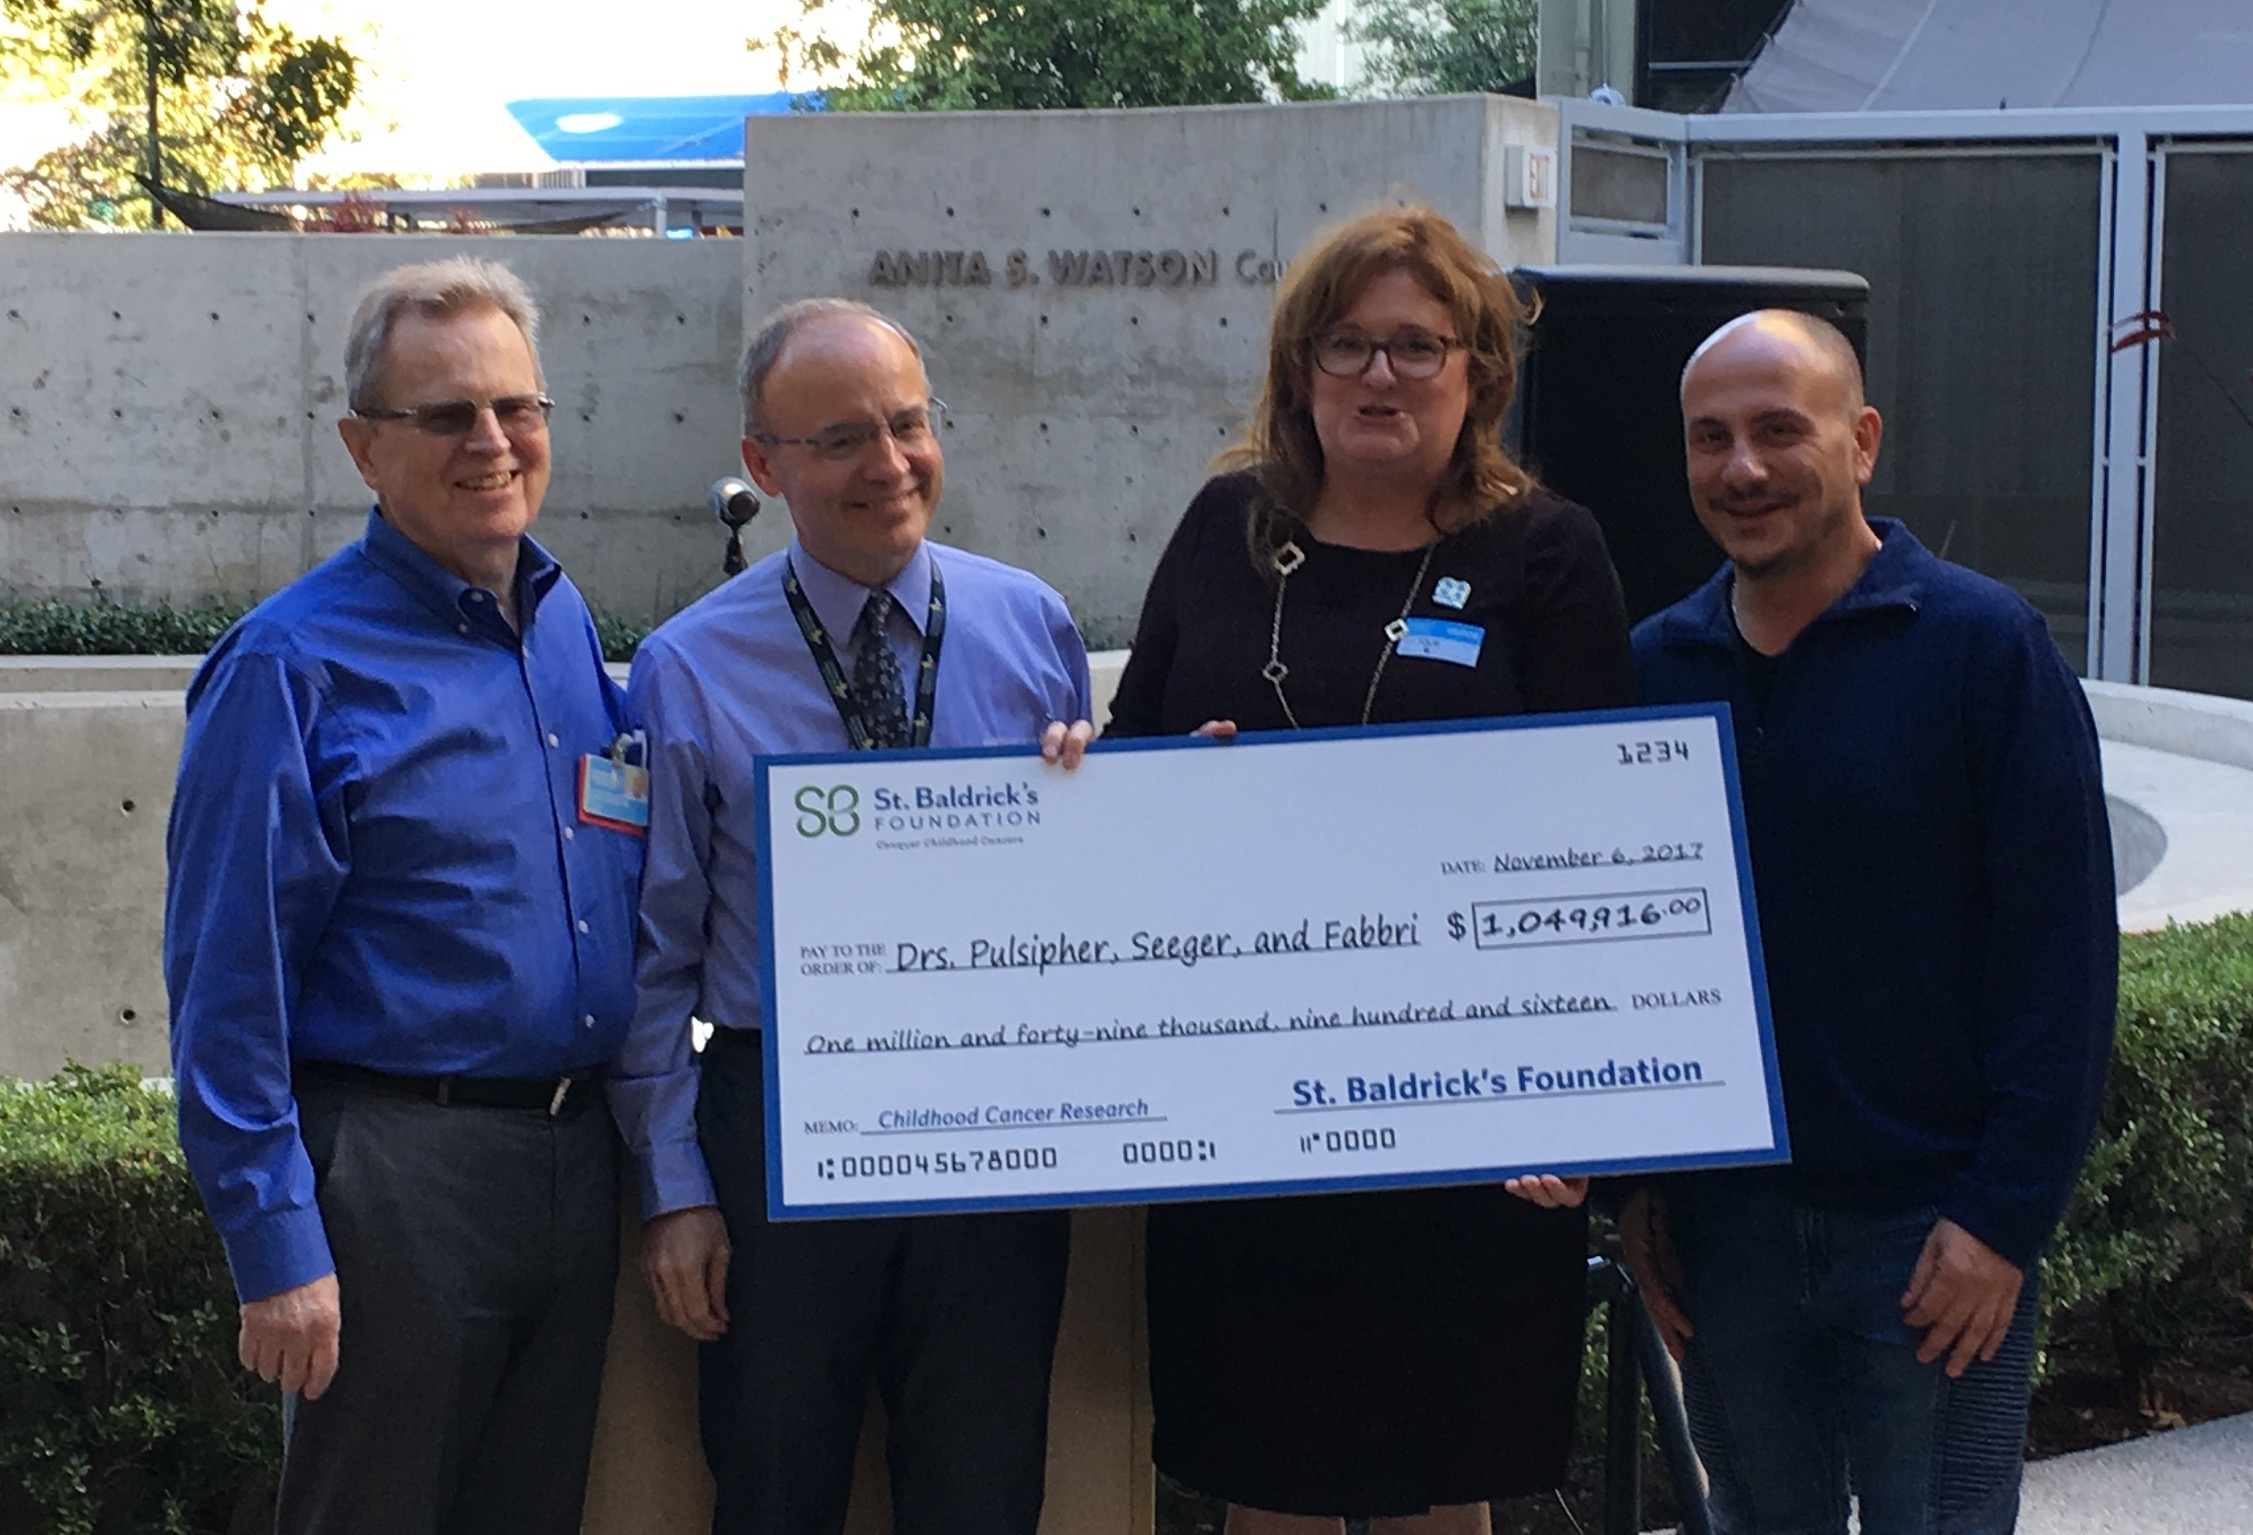 CHLA-St. Baldrick's Foundation check presentation at CHLA ..jpg